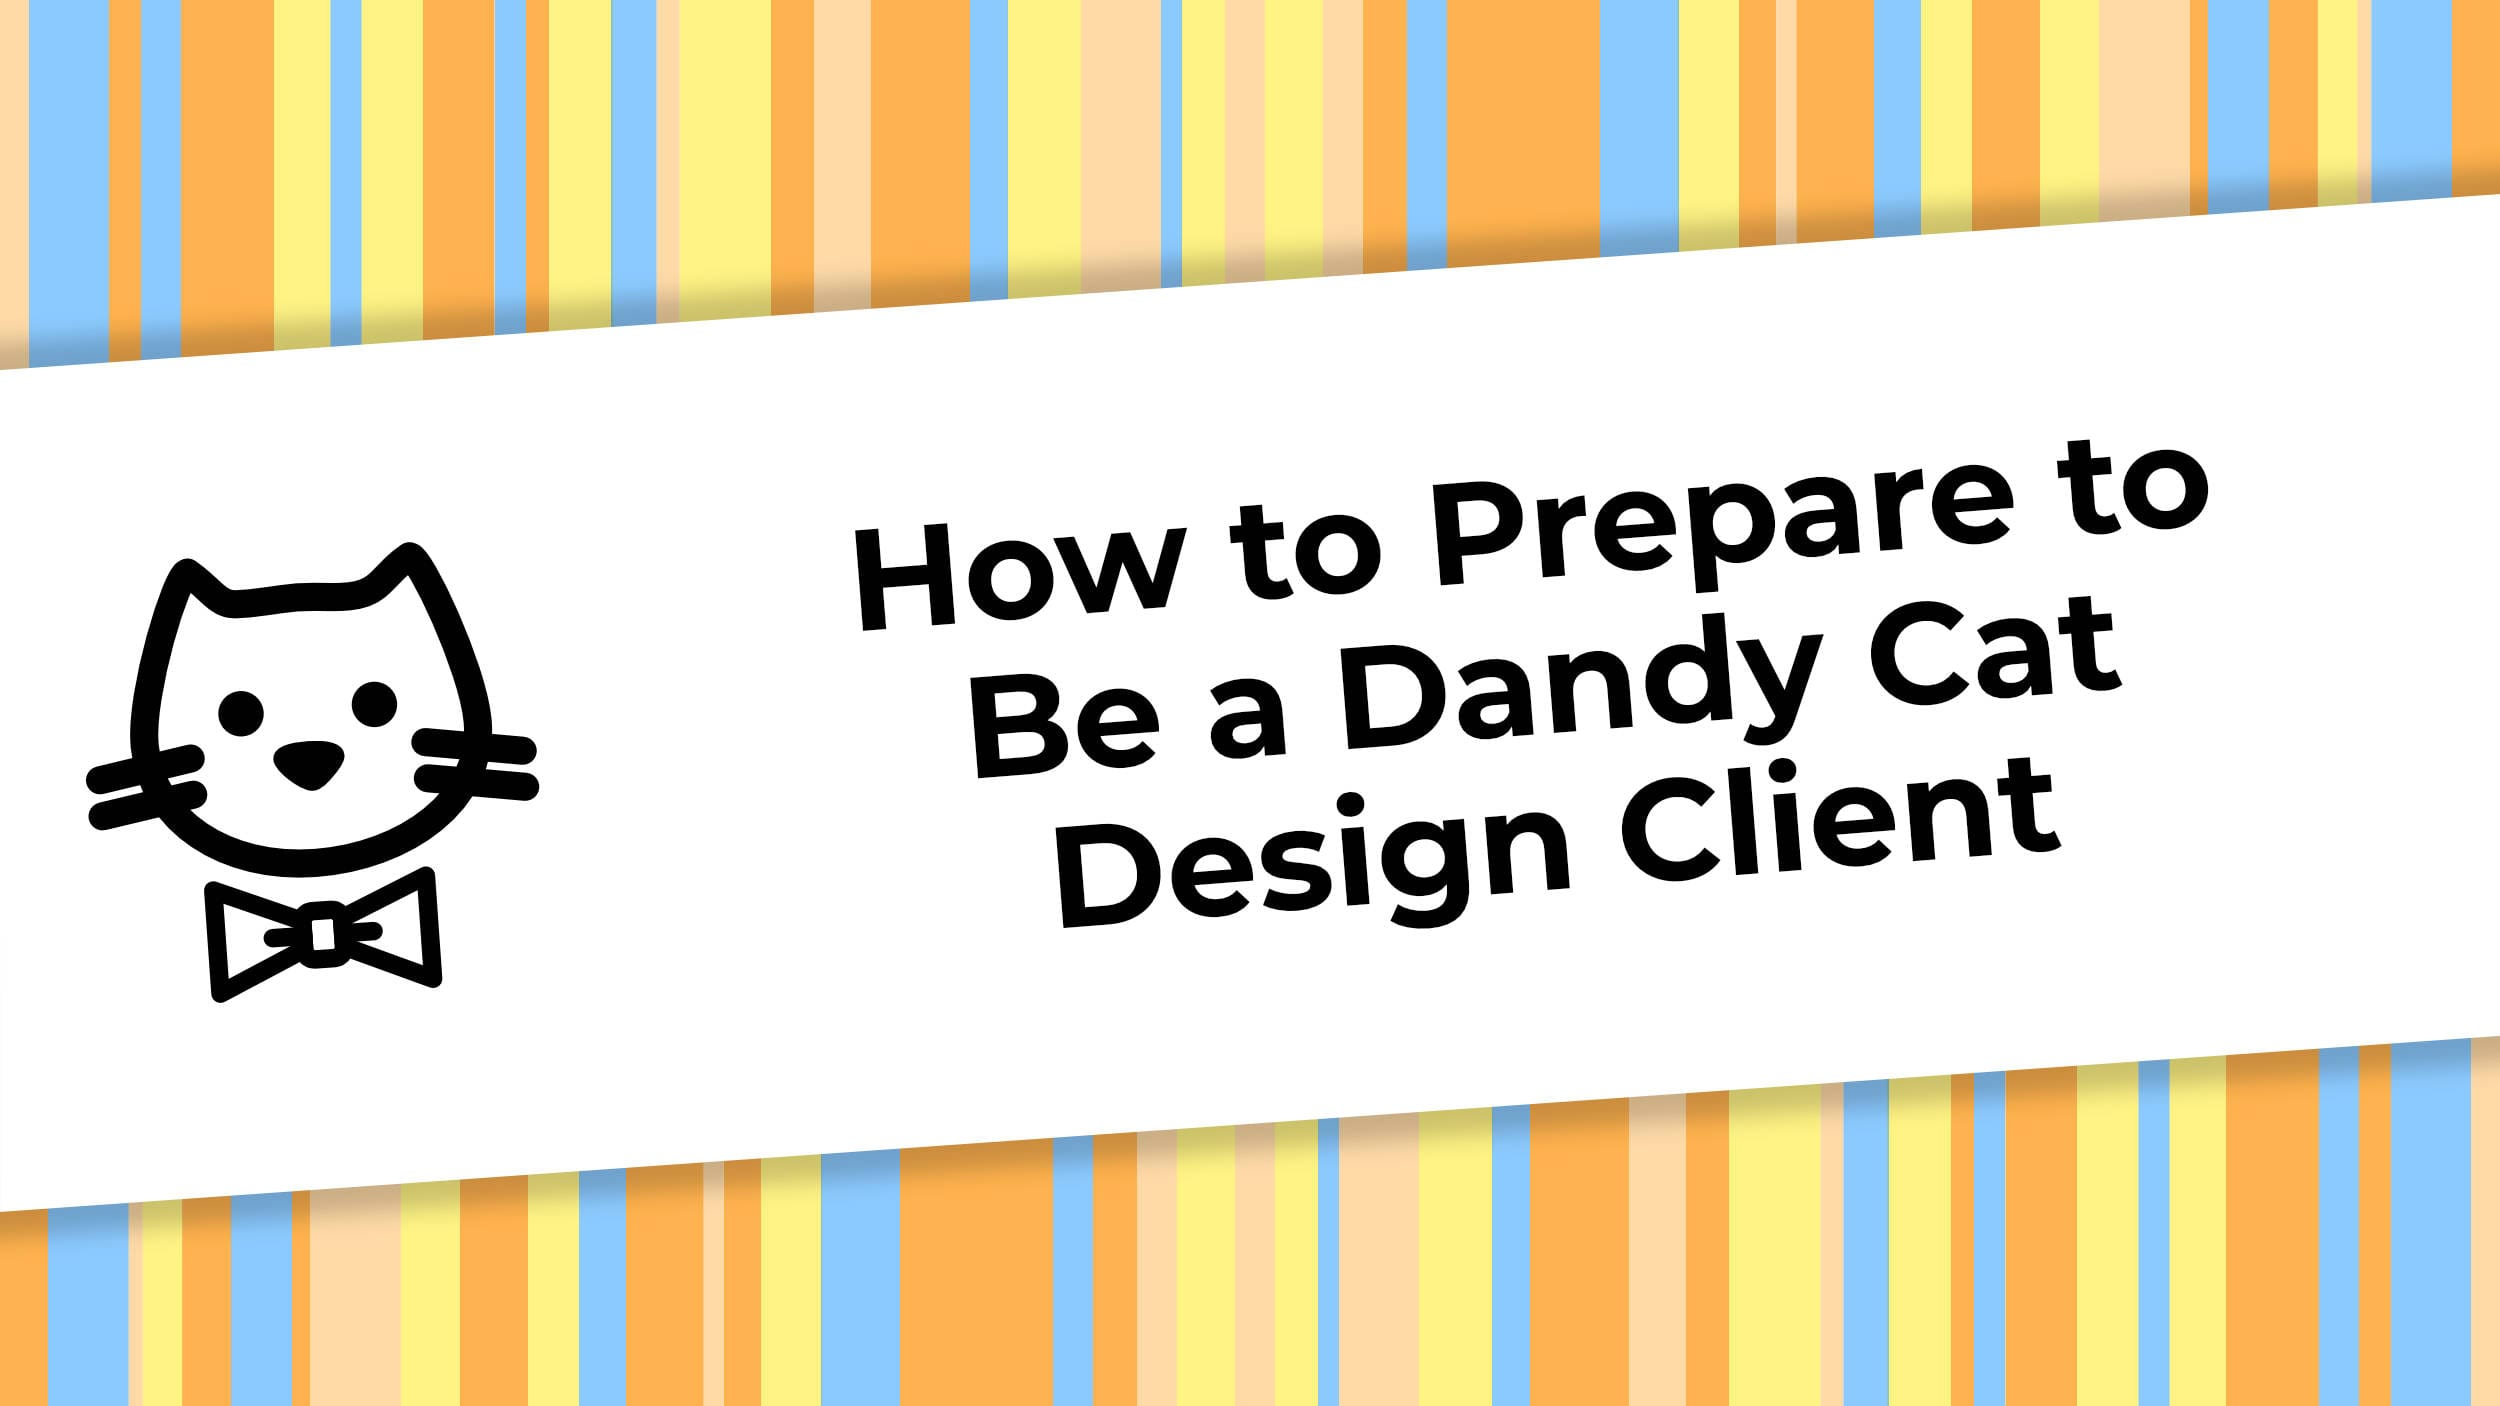 How to Prepare to Be a Dandy Cat Design Client.jpg